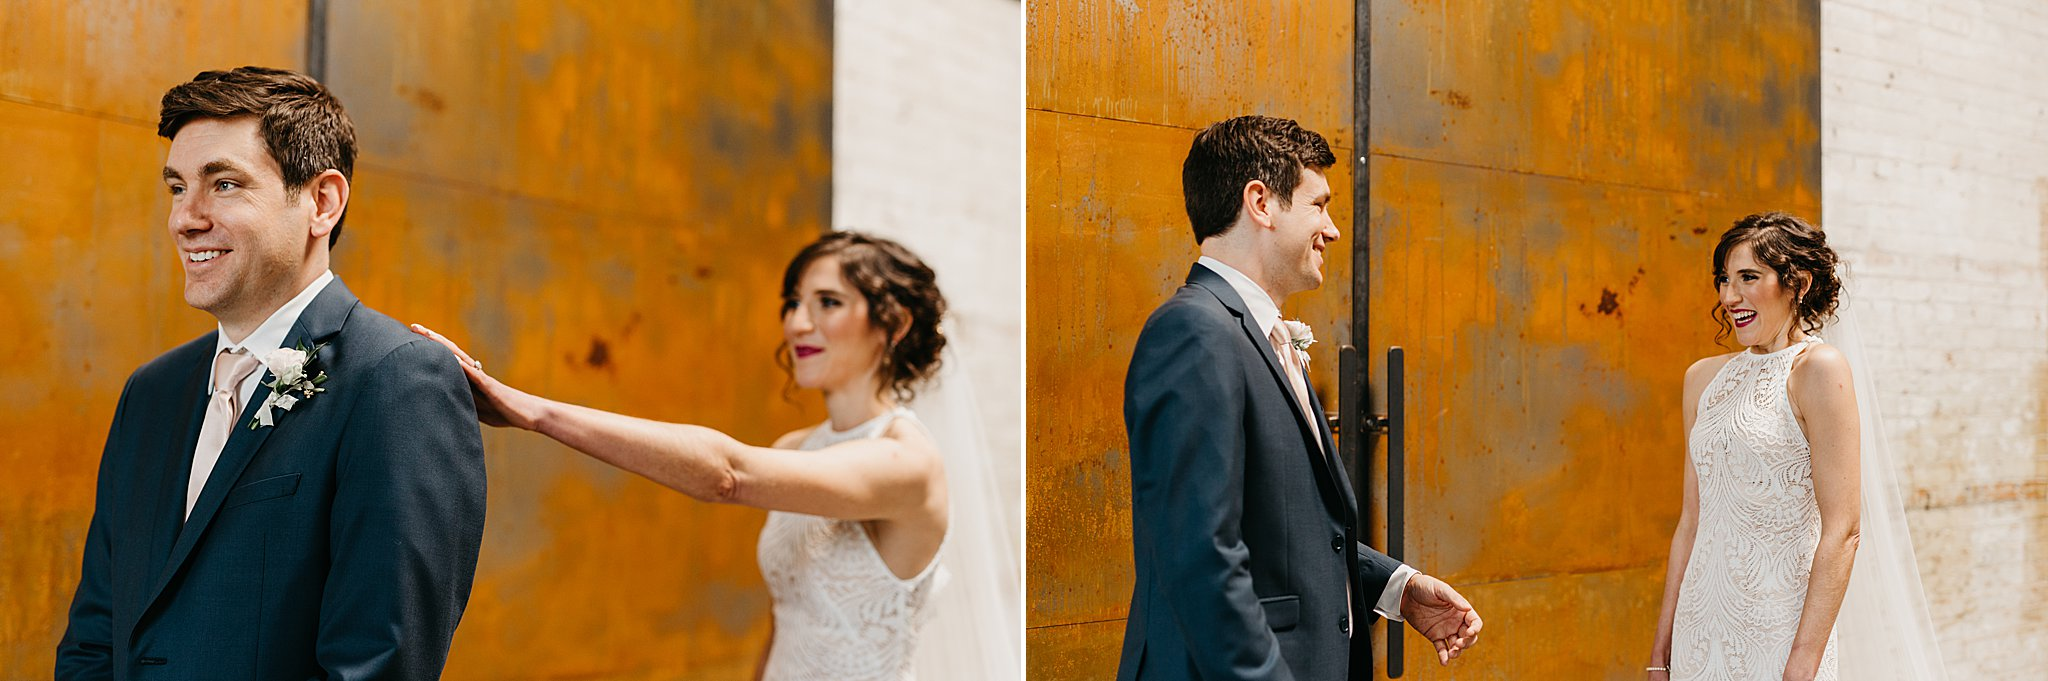 Wilderlove Co_Wedding Photographer_Industrial Wedding_Jewish Wedding_Dallas Texas Wedding_Brake & Clutch Warehouse_North Texas Photographer_0019.jpg